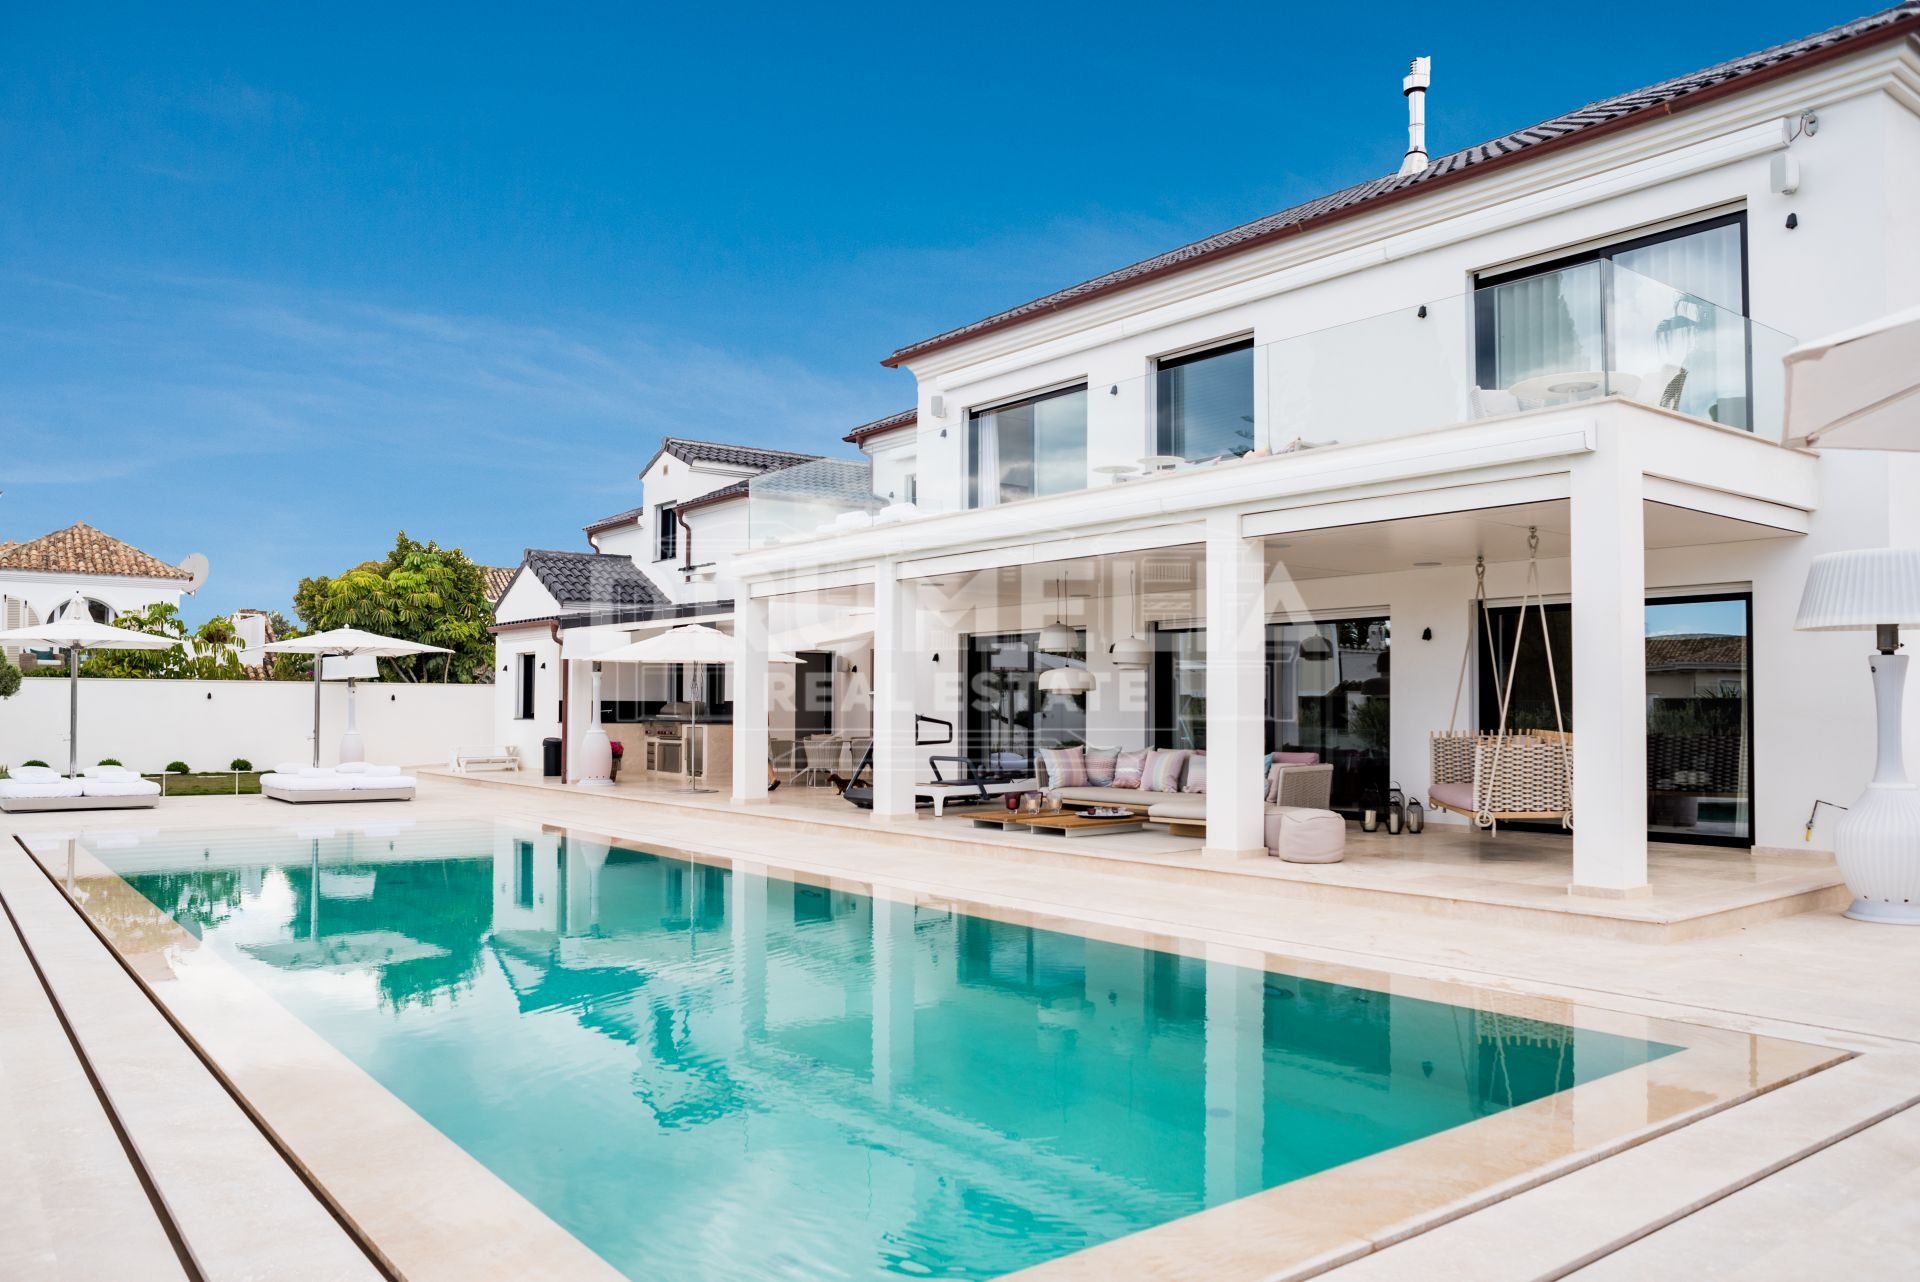 Marbella Golden Mile, Magnificent Modern Luxury Villa in Casablanca, Marbella Golden Mile